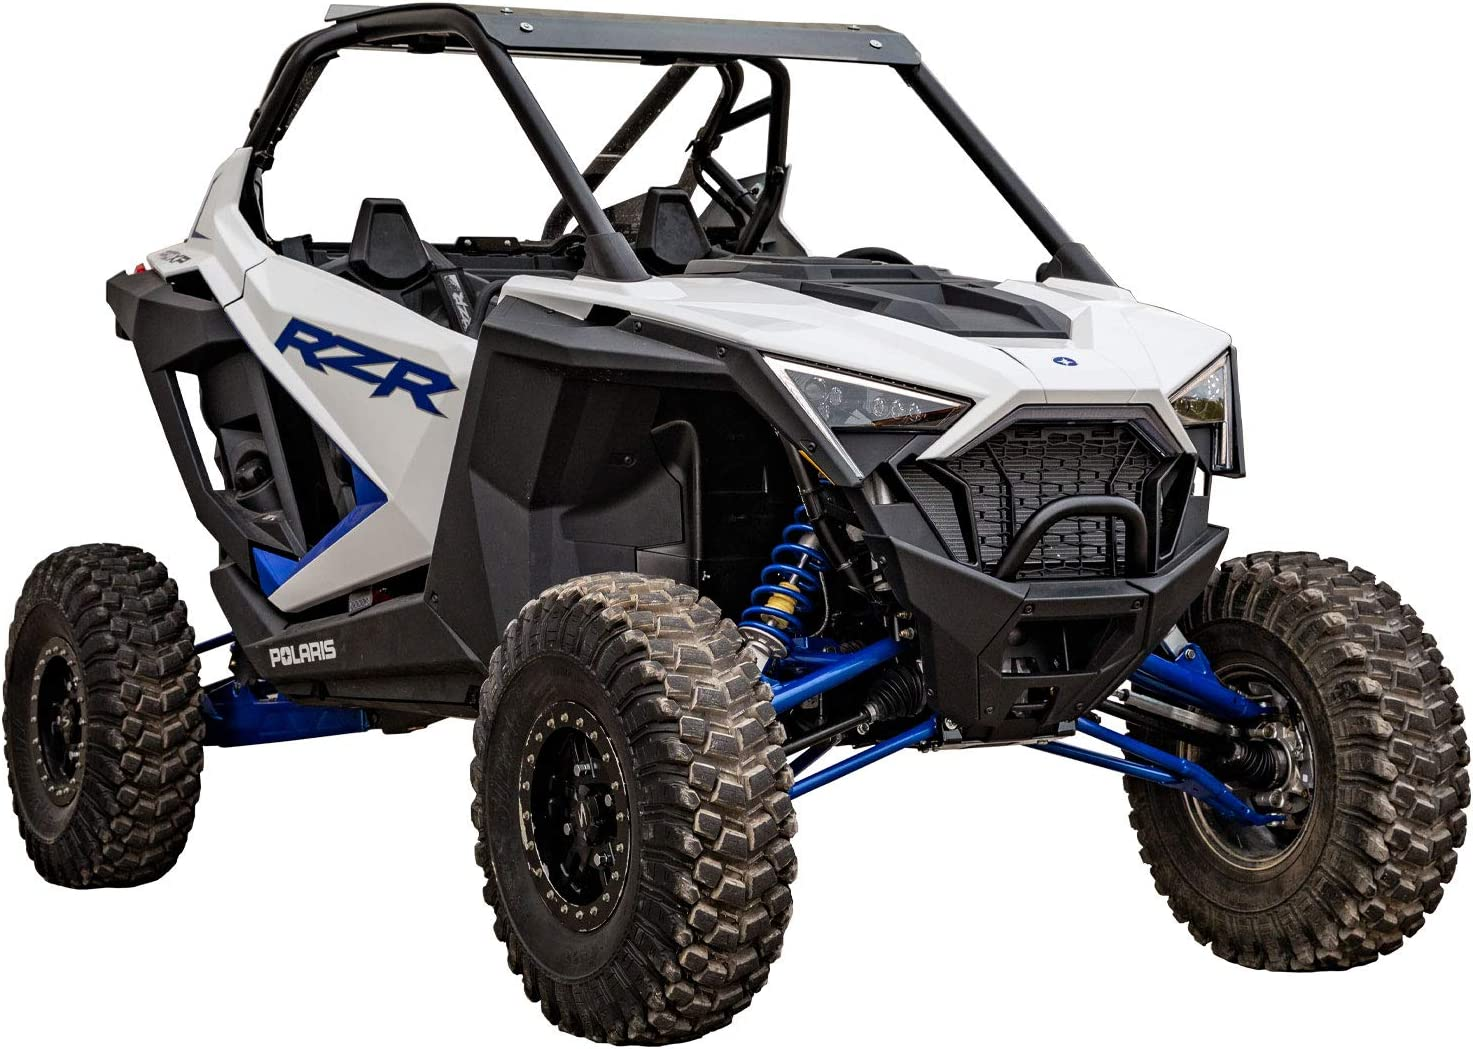 SuperATV 3'' Lift Kit for Polaris RZR with Walker PRO All items in the store XP Popular Evans S